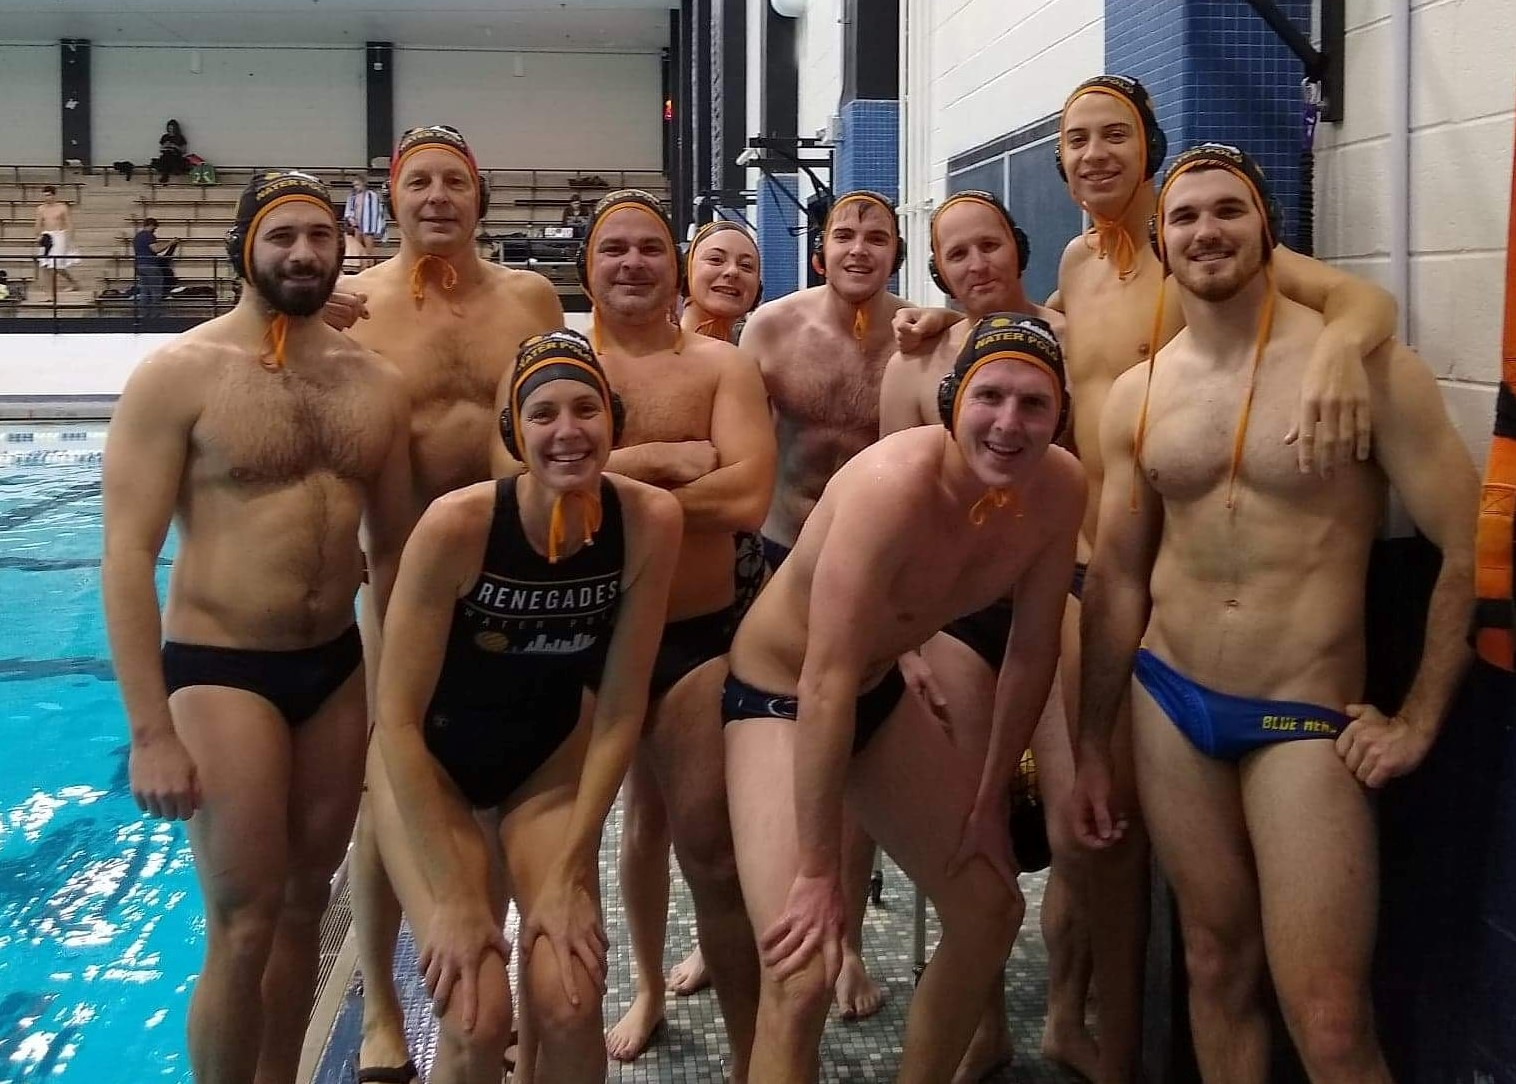 water polo players from HAWKS and Renegades